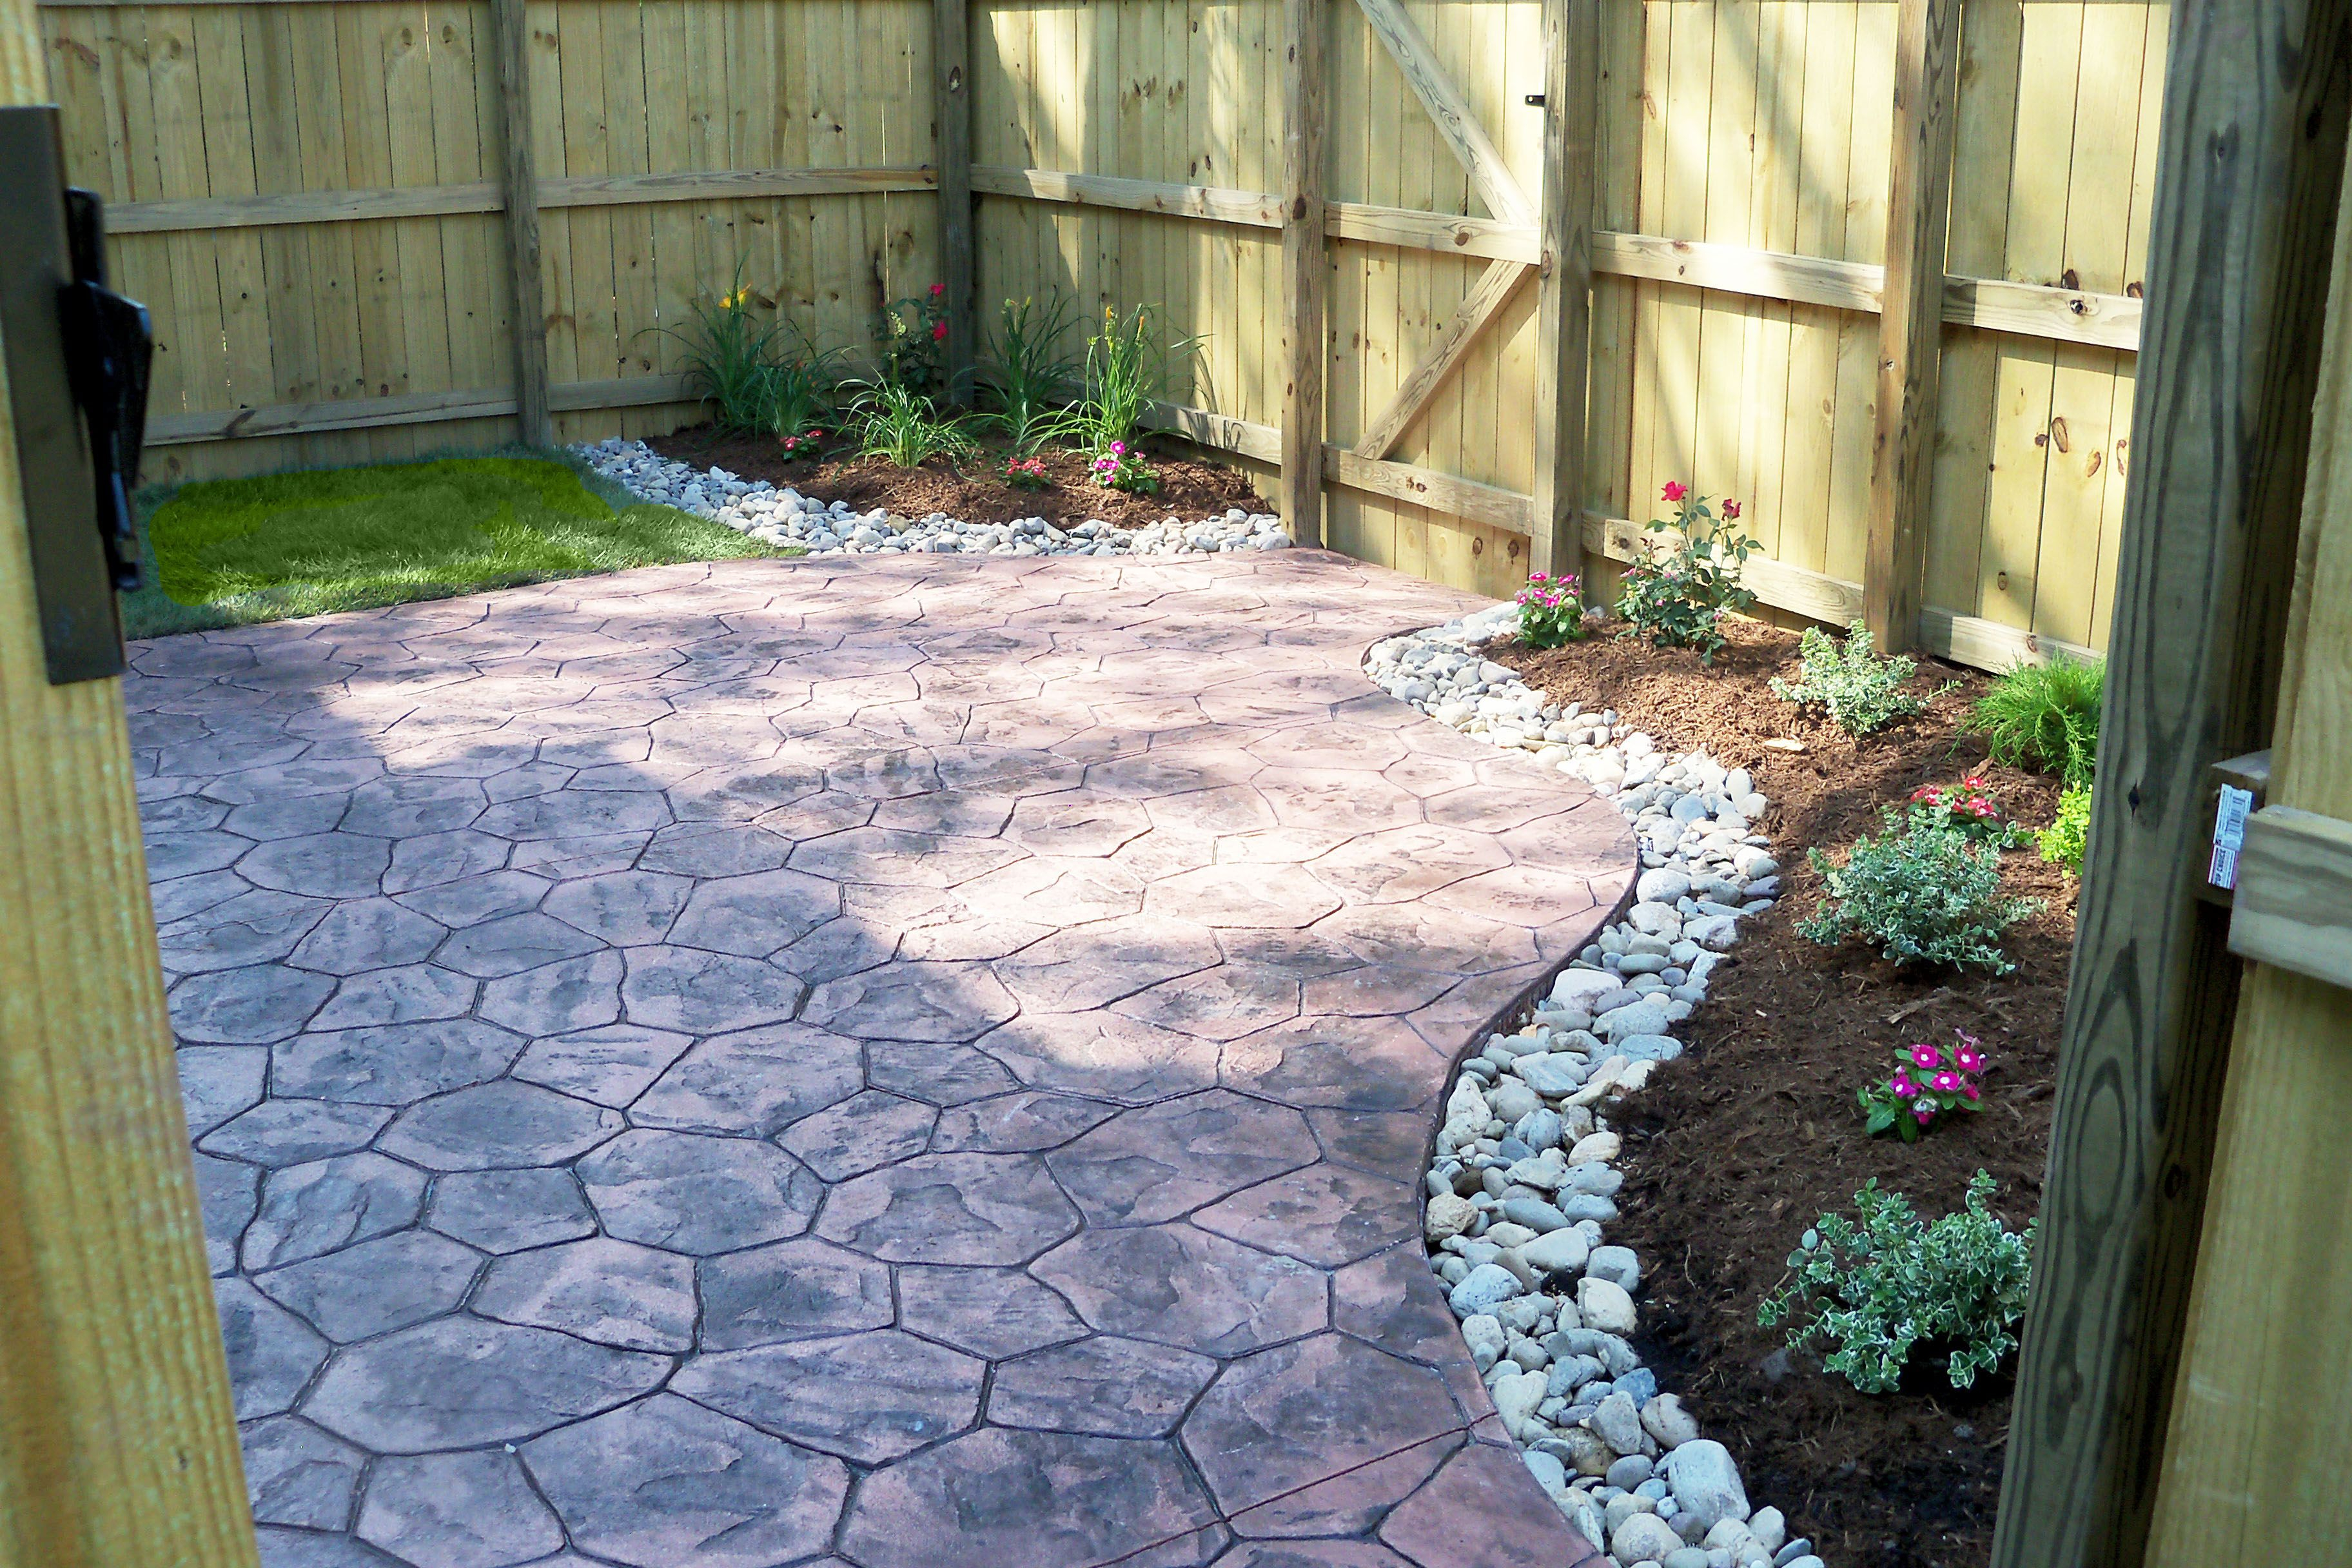 Townhouse Backyard With Stamped Concrete Patio And Simple within 11 Genius Tricks of How to Make Townhouse Backyard Landscaping